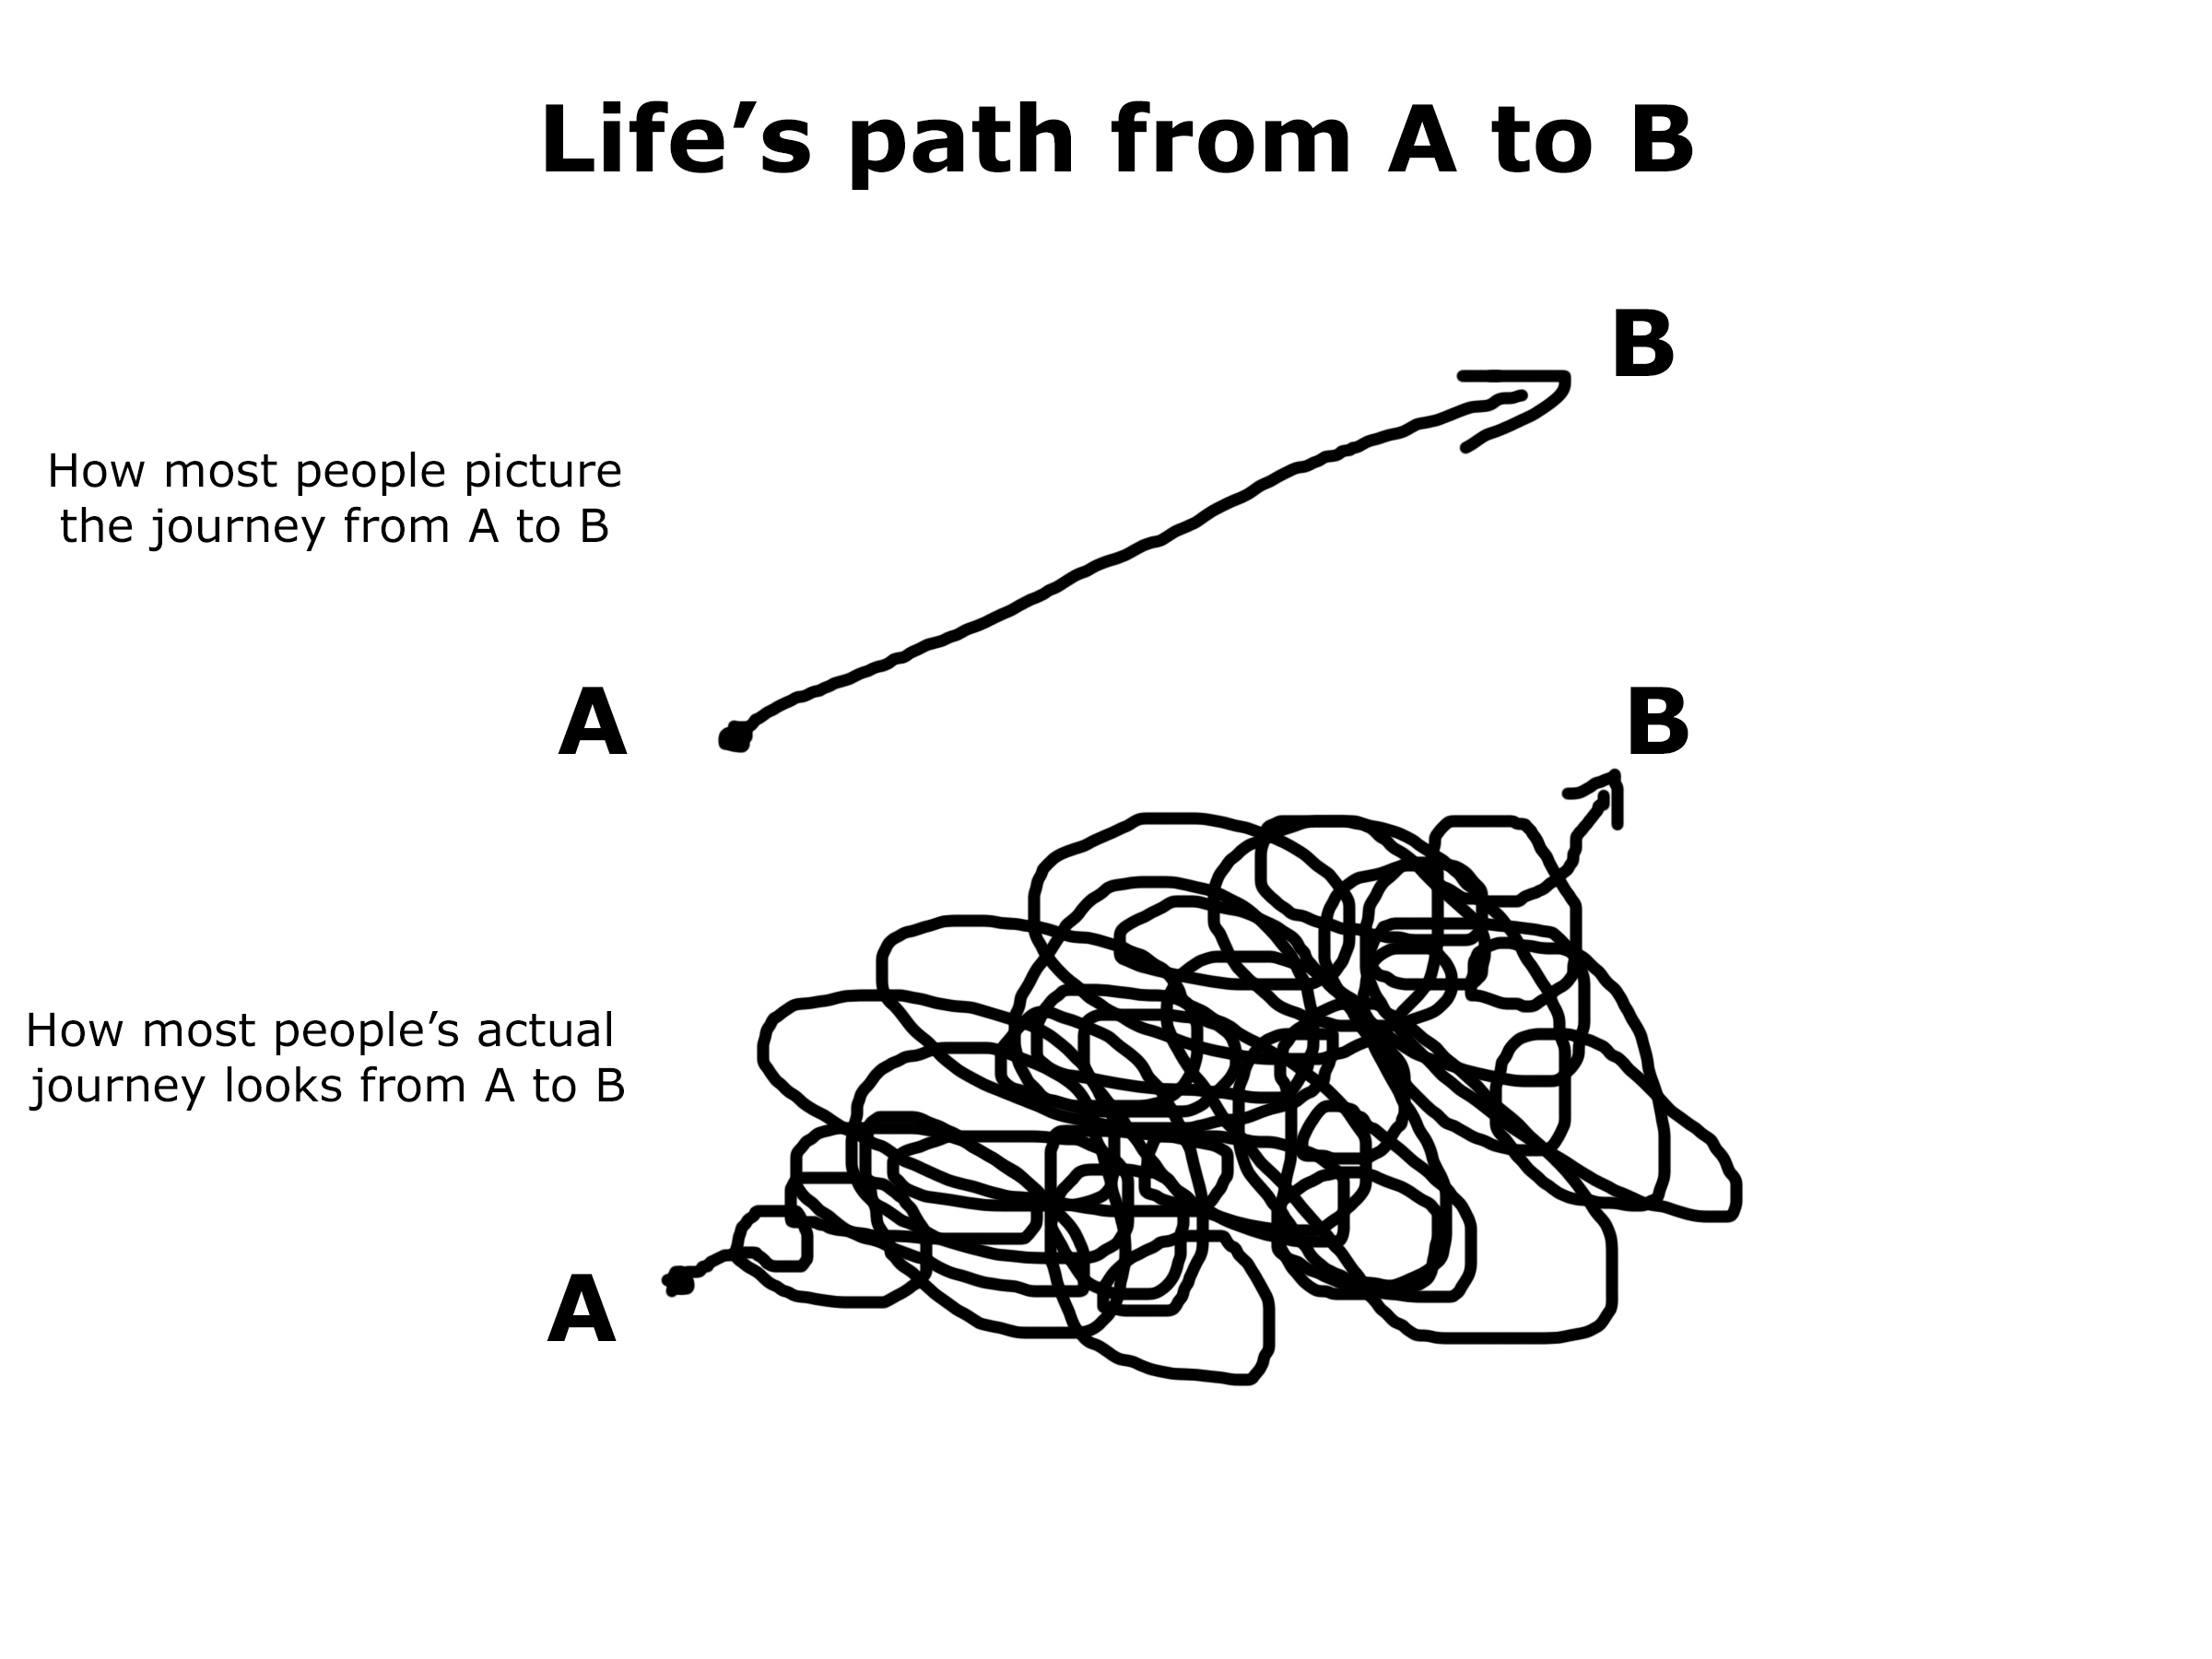 Life path from point A to point B